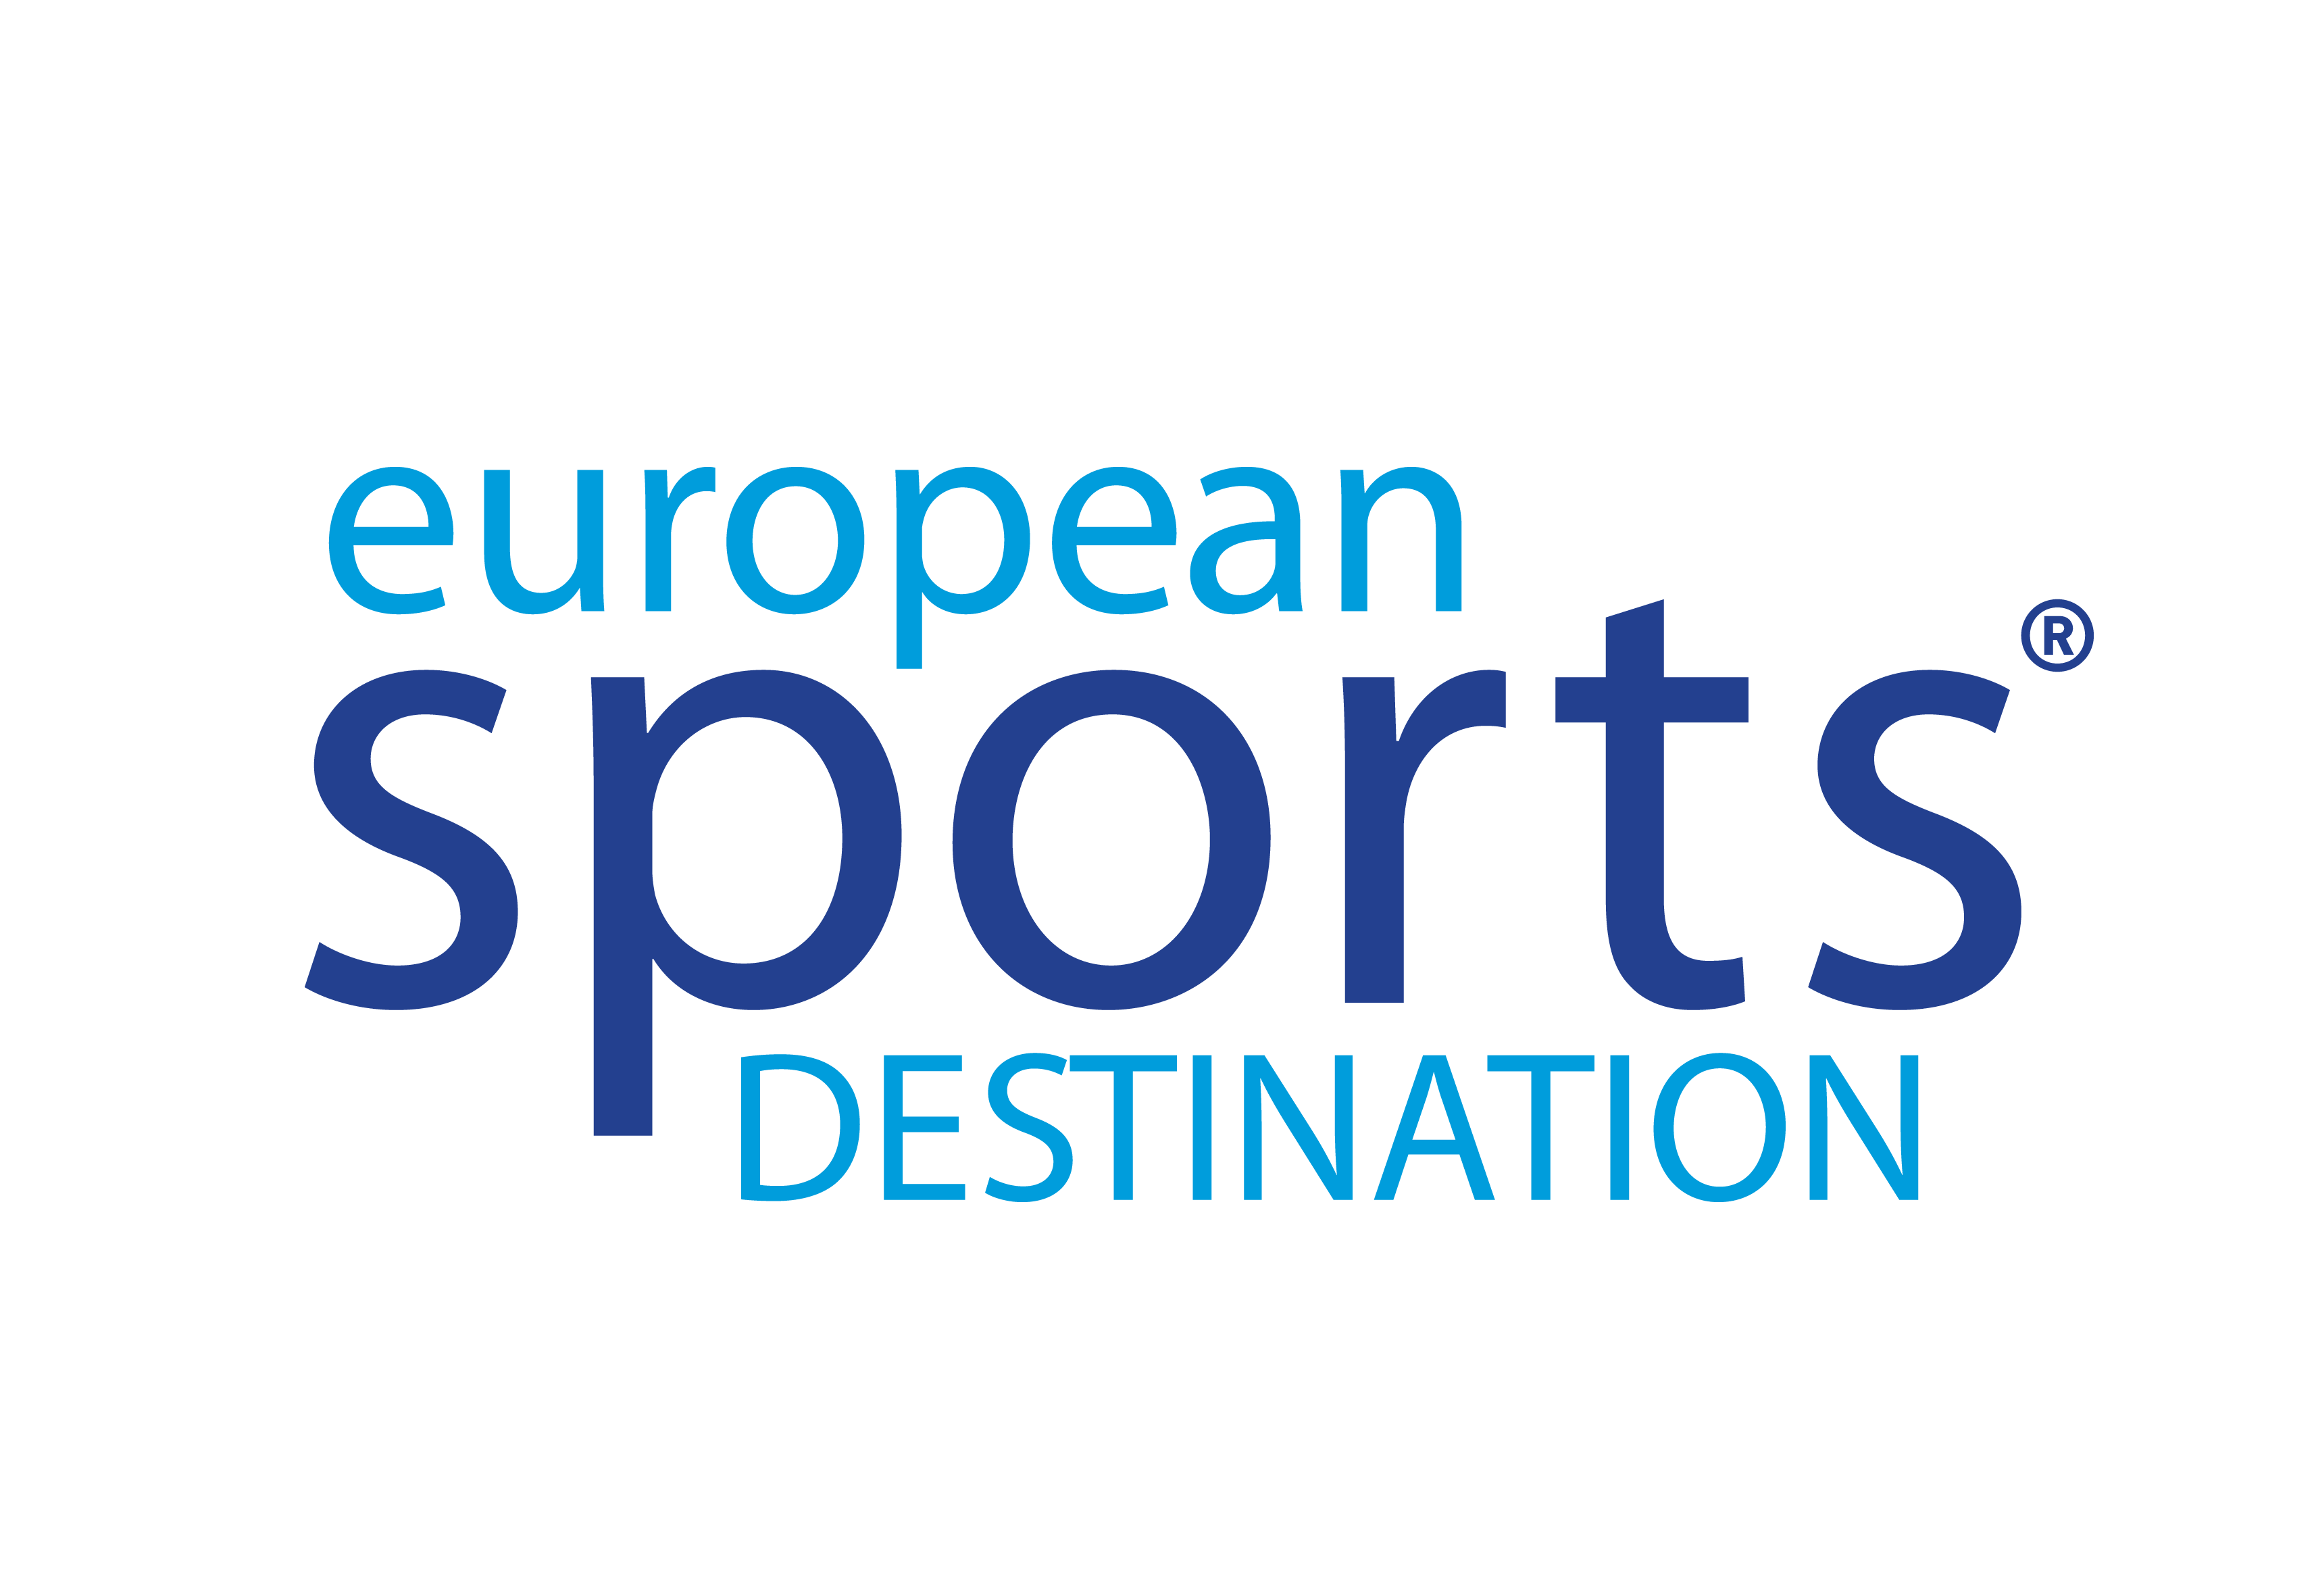 European Sports Destination